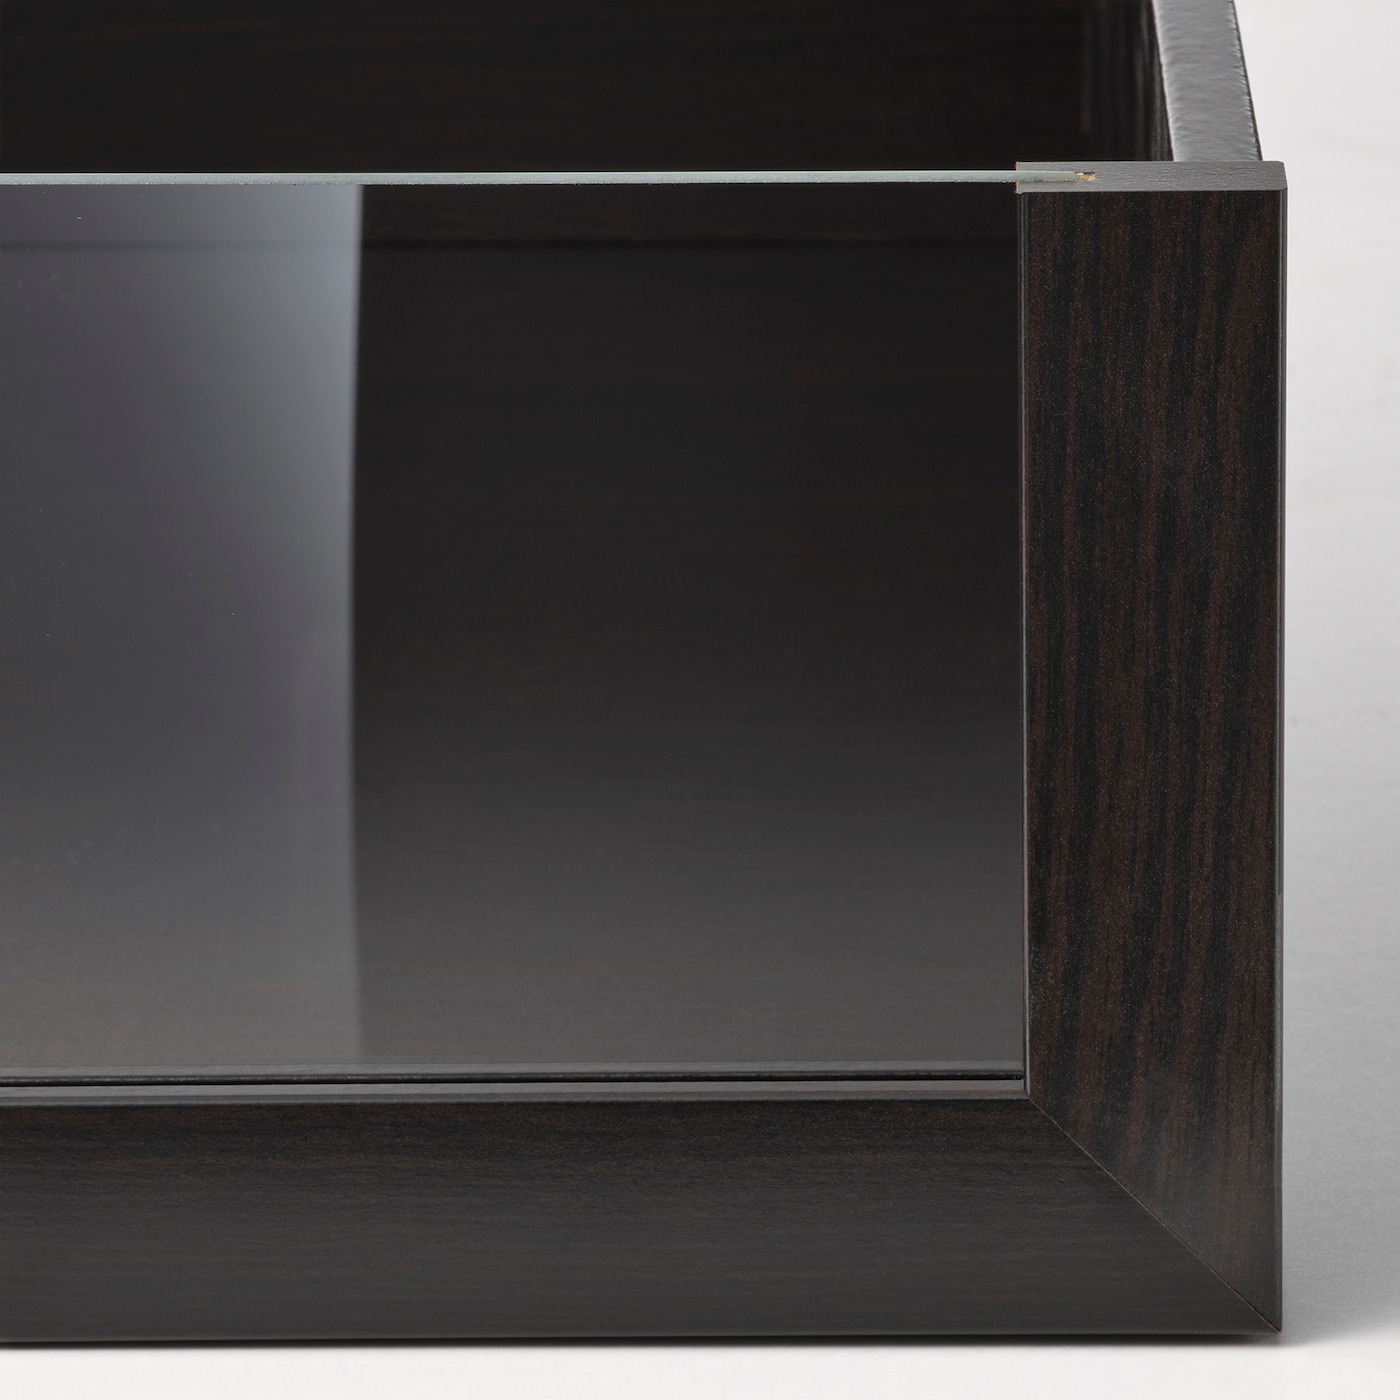 KOMPLEMENT Drawer with glass front, black-brown, 100x58 cm